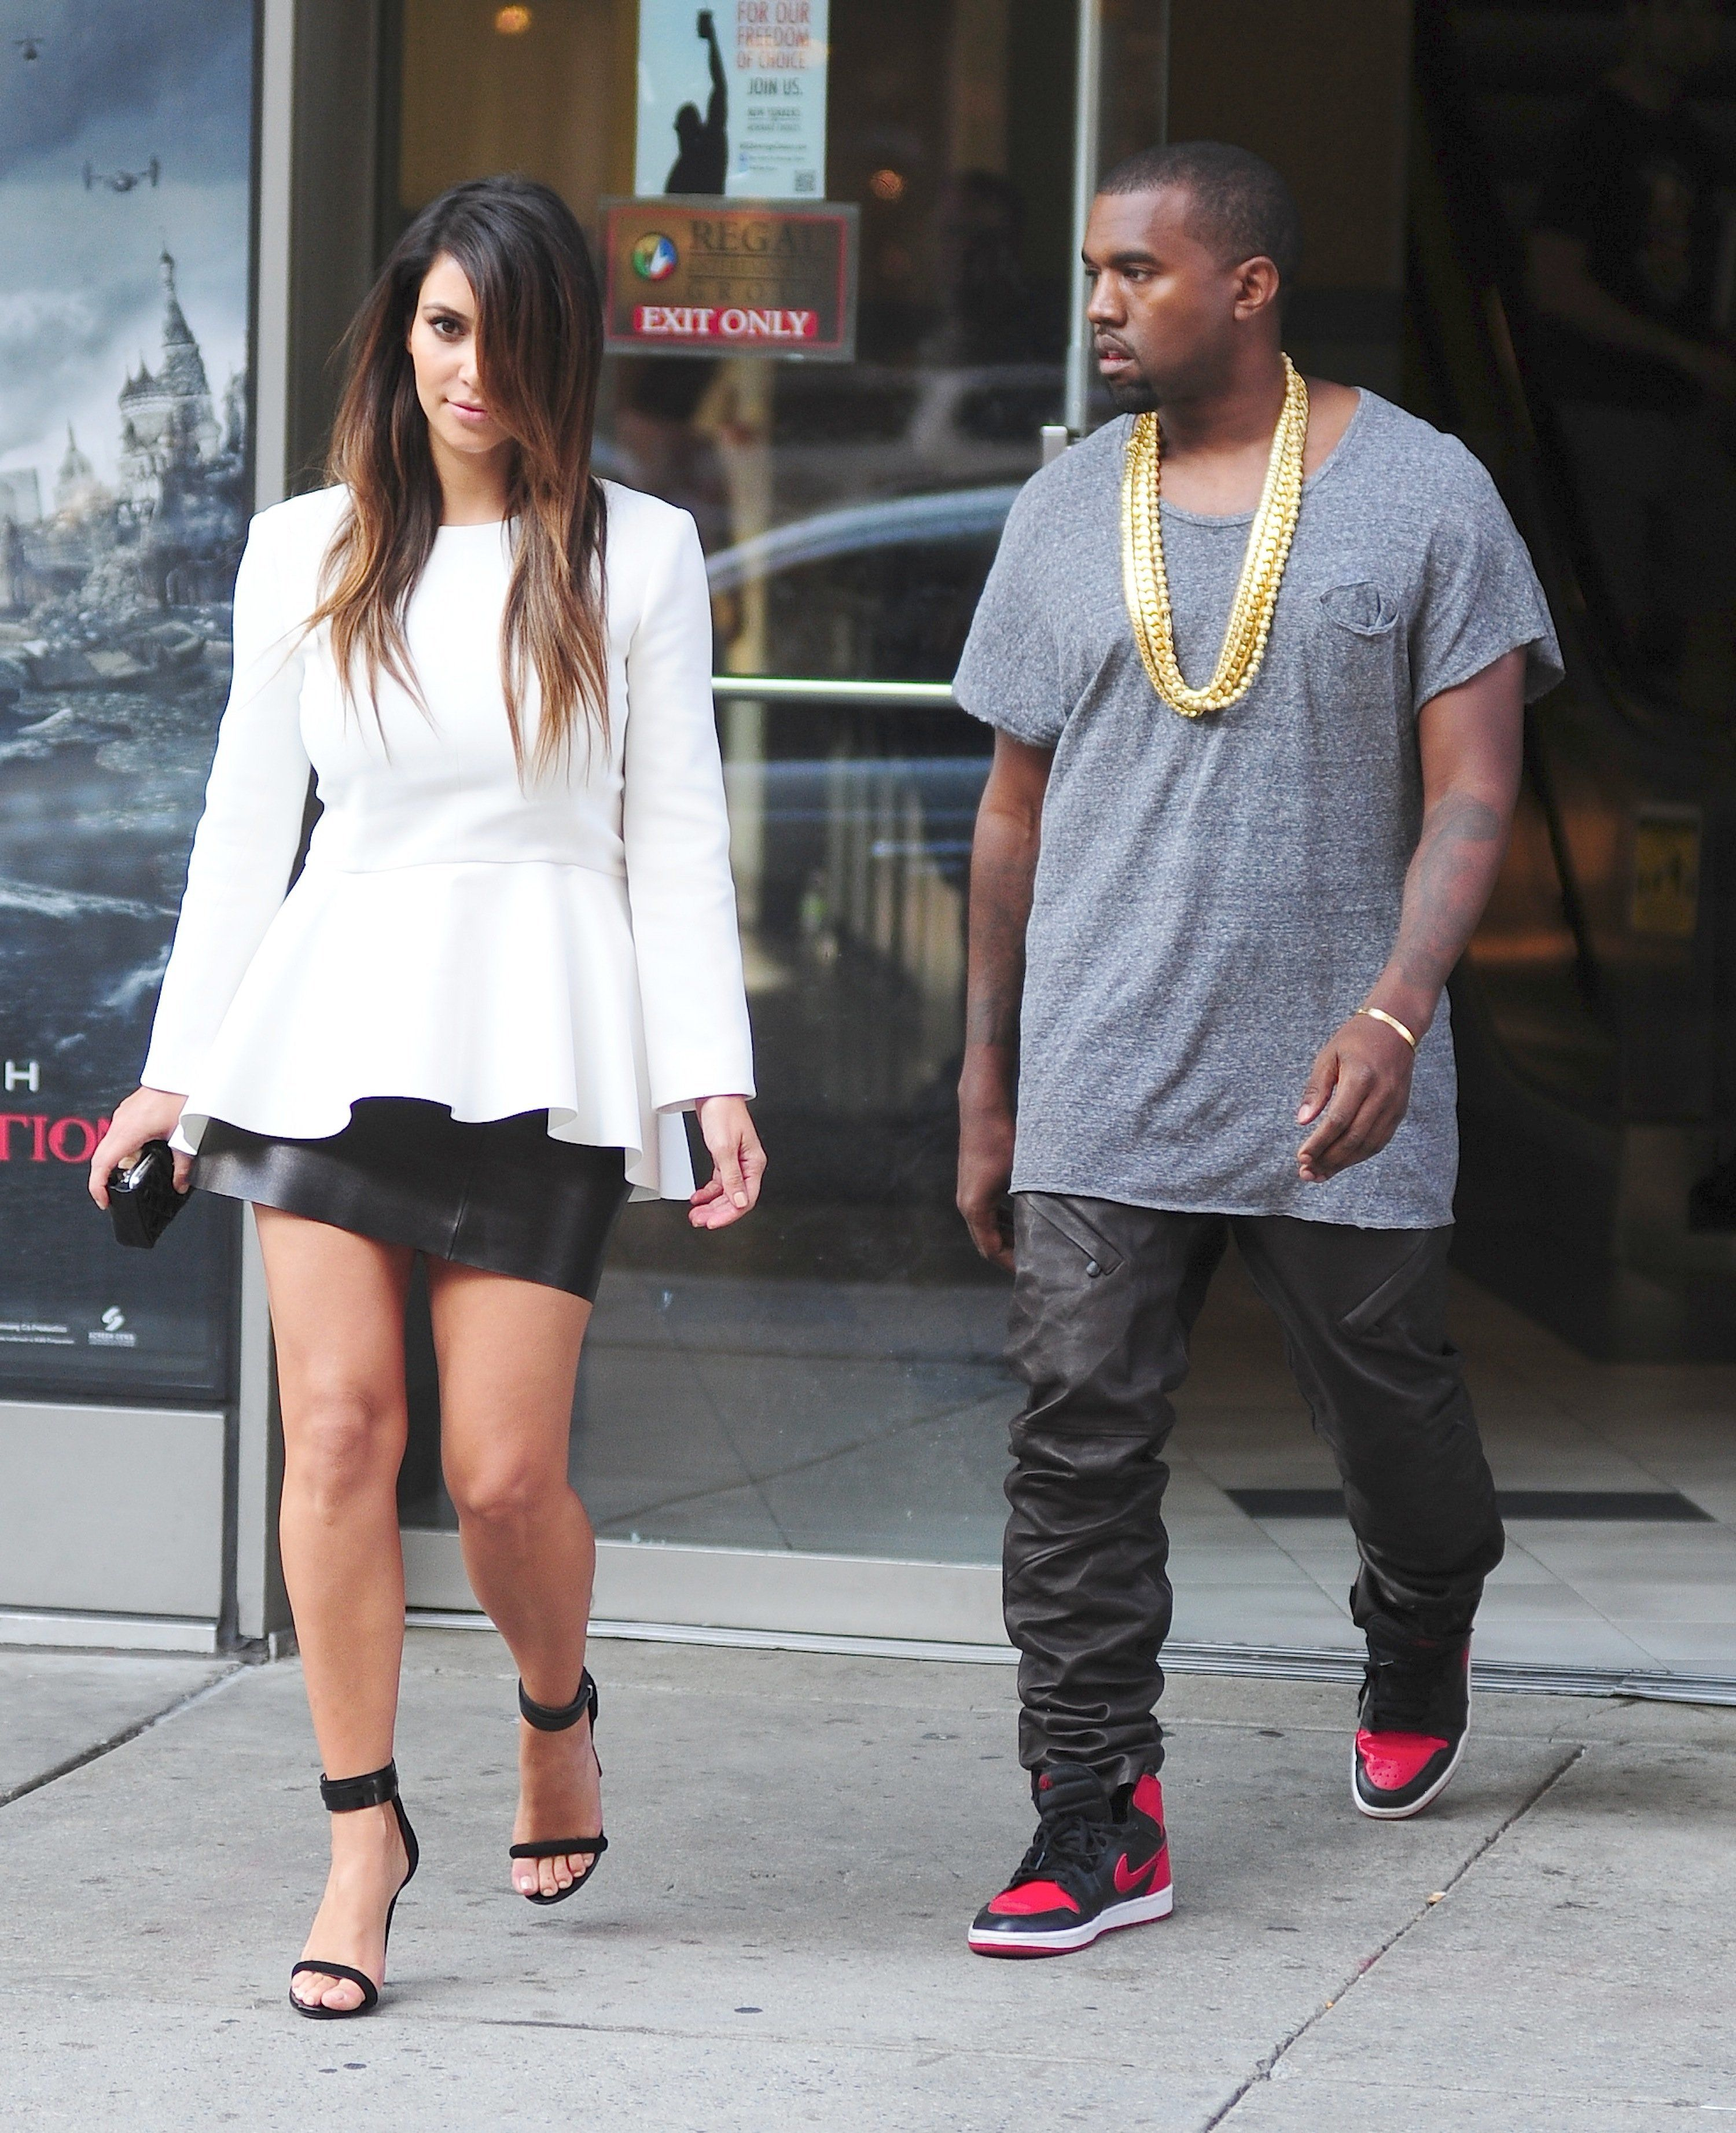 49 Times Nike Shoes Made An Outfit